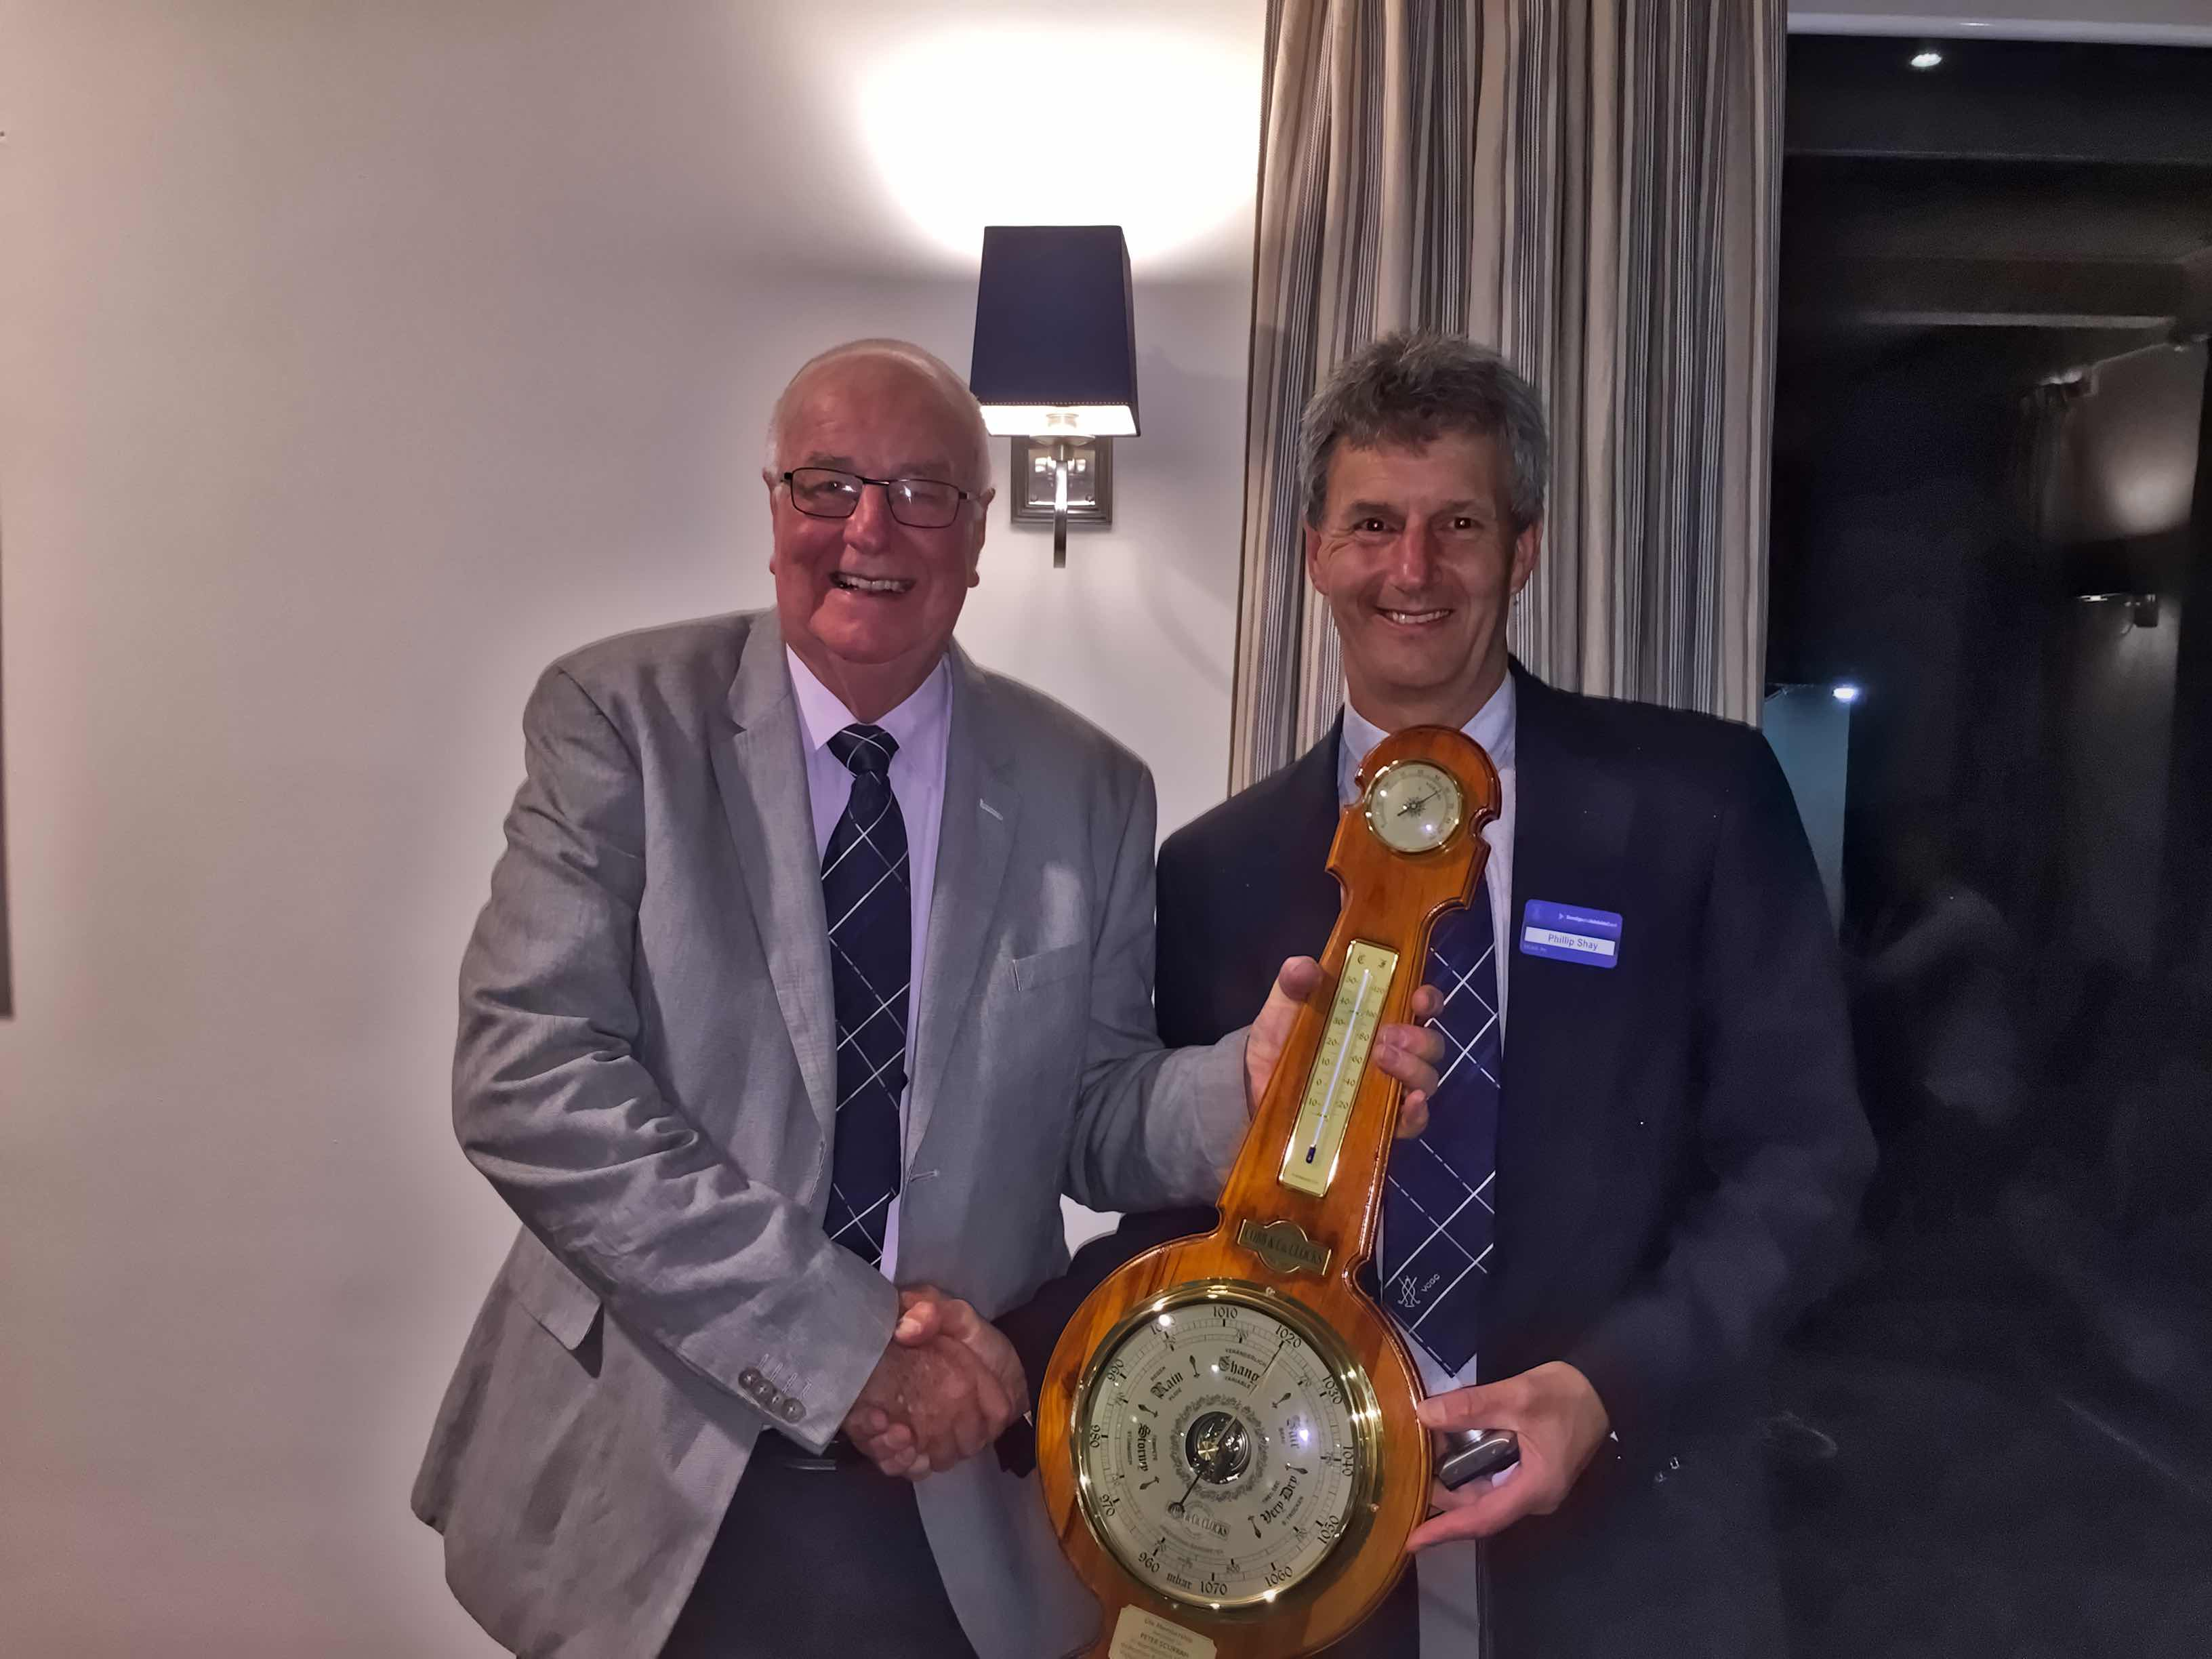 Photo of Peter Scurrah becoming Life Member of VCGC - 23 Nov 2016